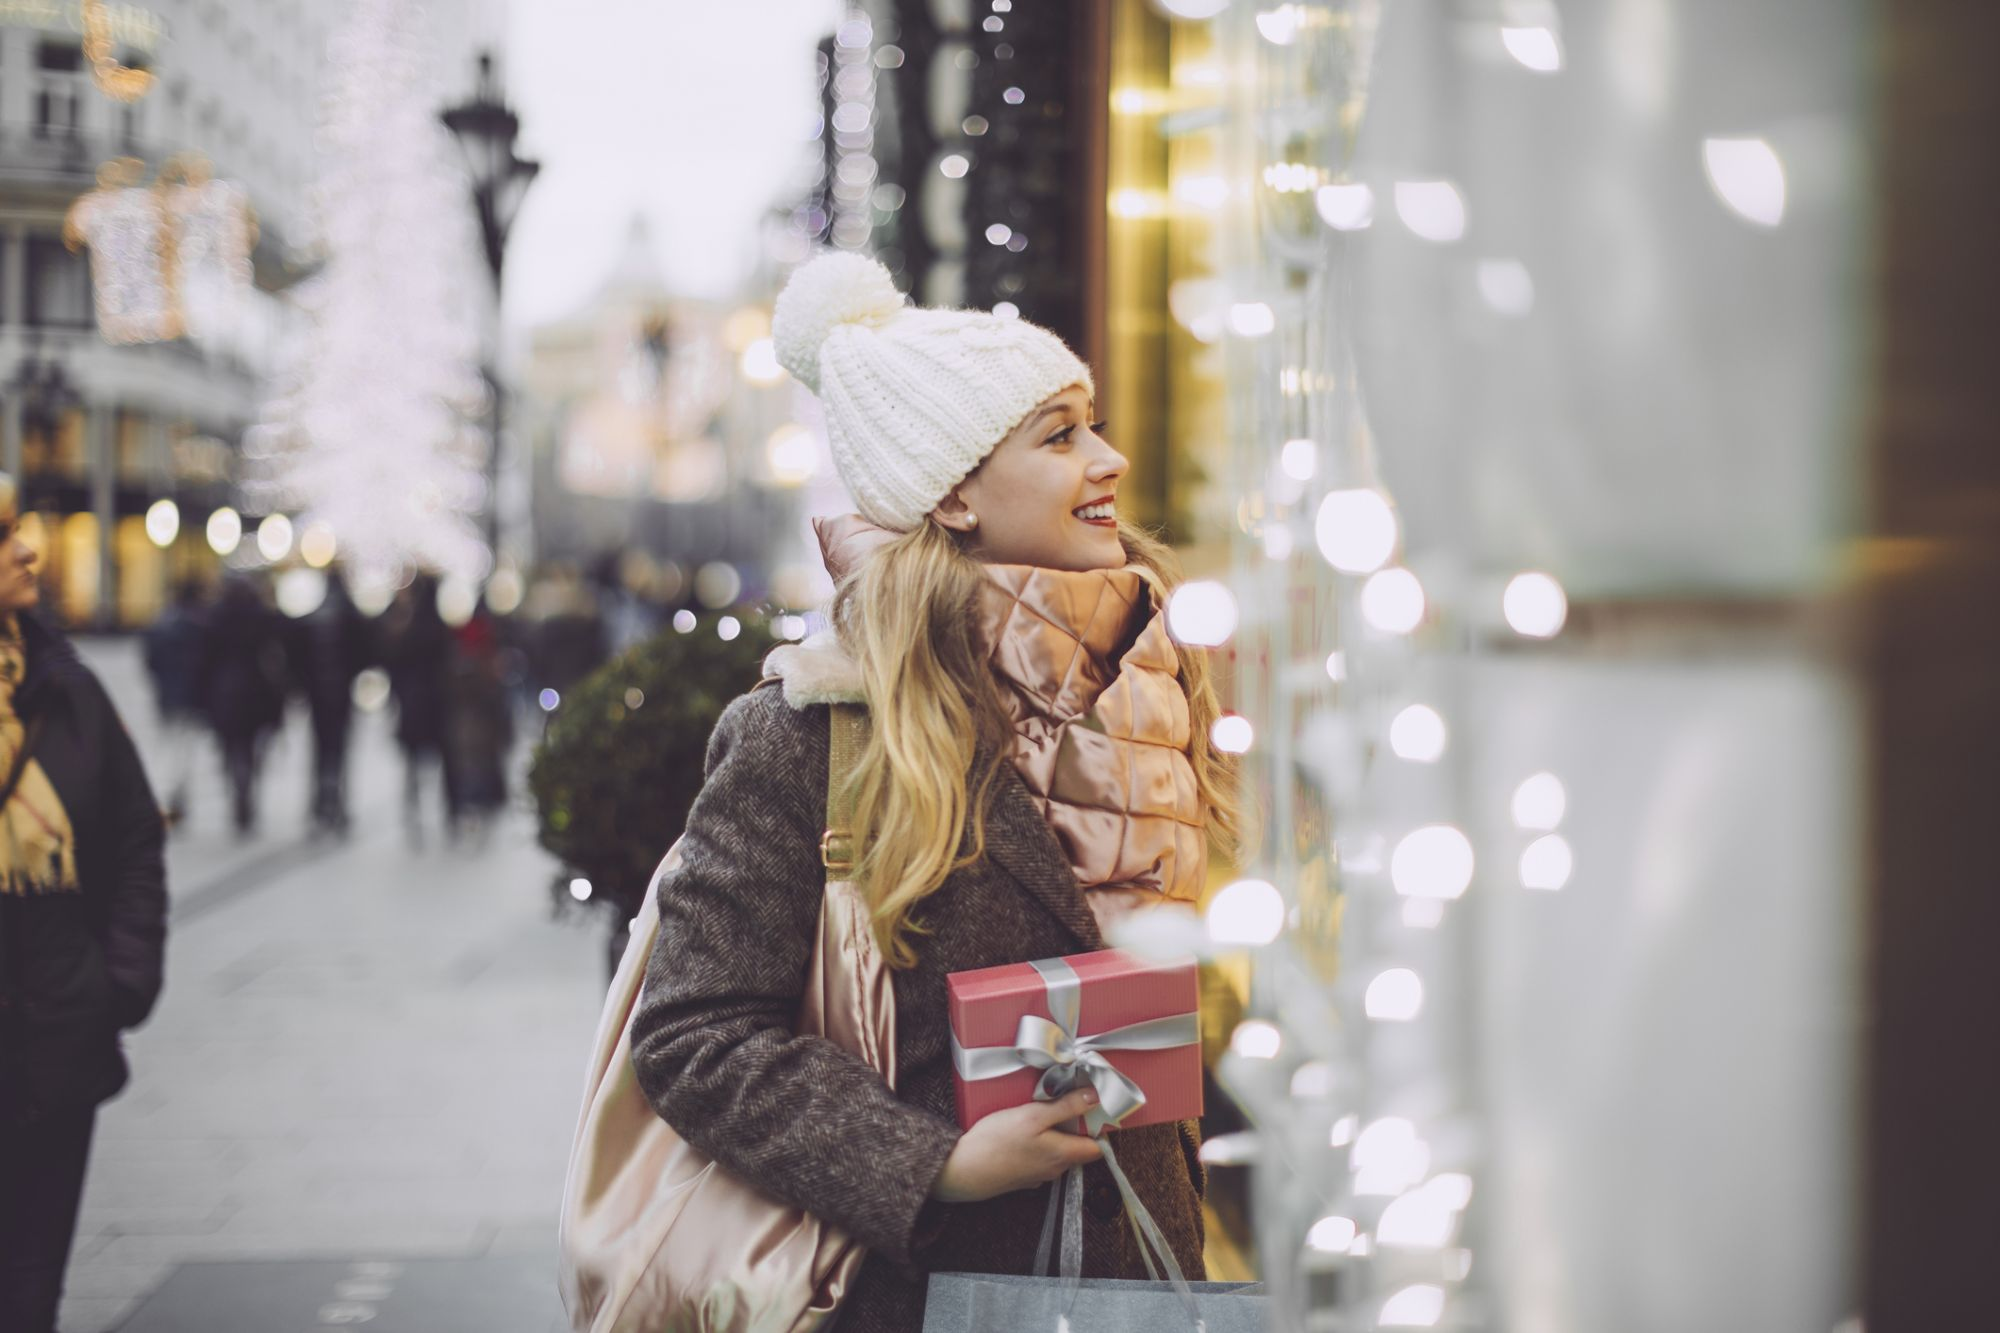 Holiday 2018 Spending Could Top $720 Billion. Here's Other Eye-Popping Numbers You Need to Know.